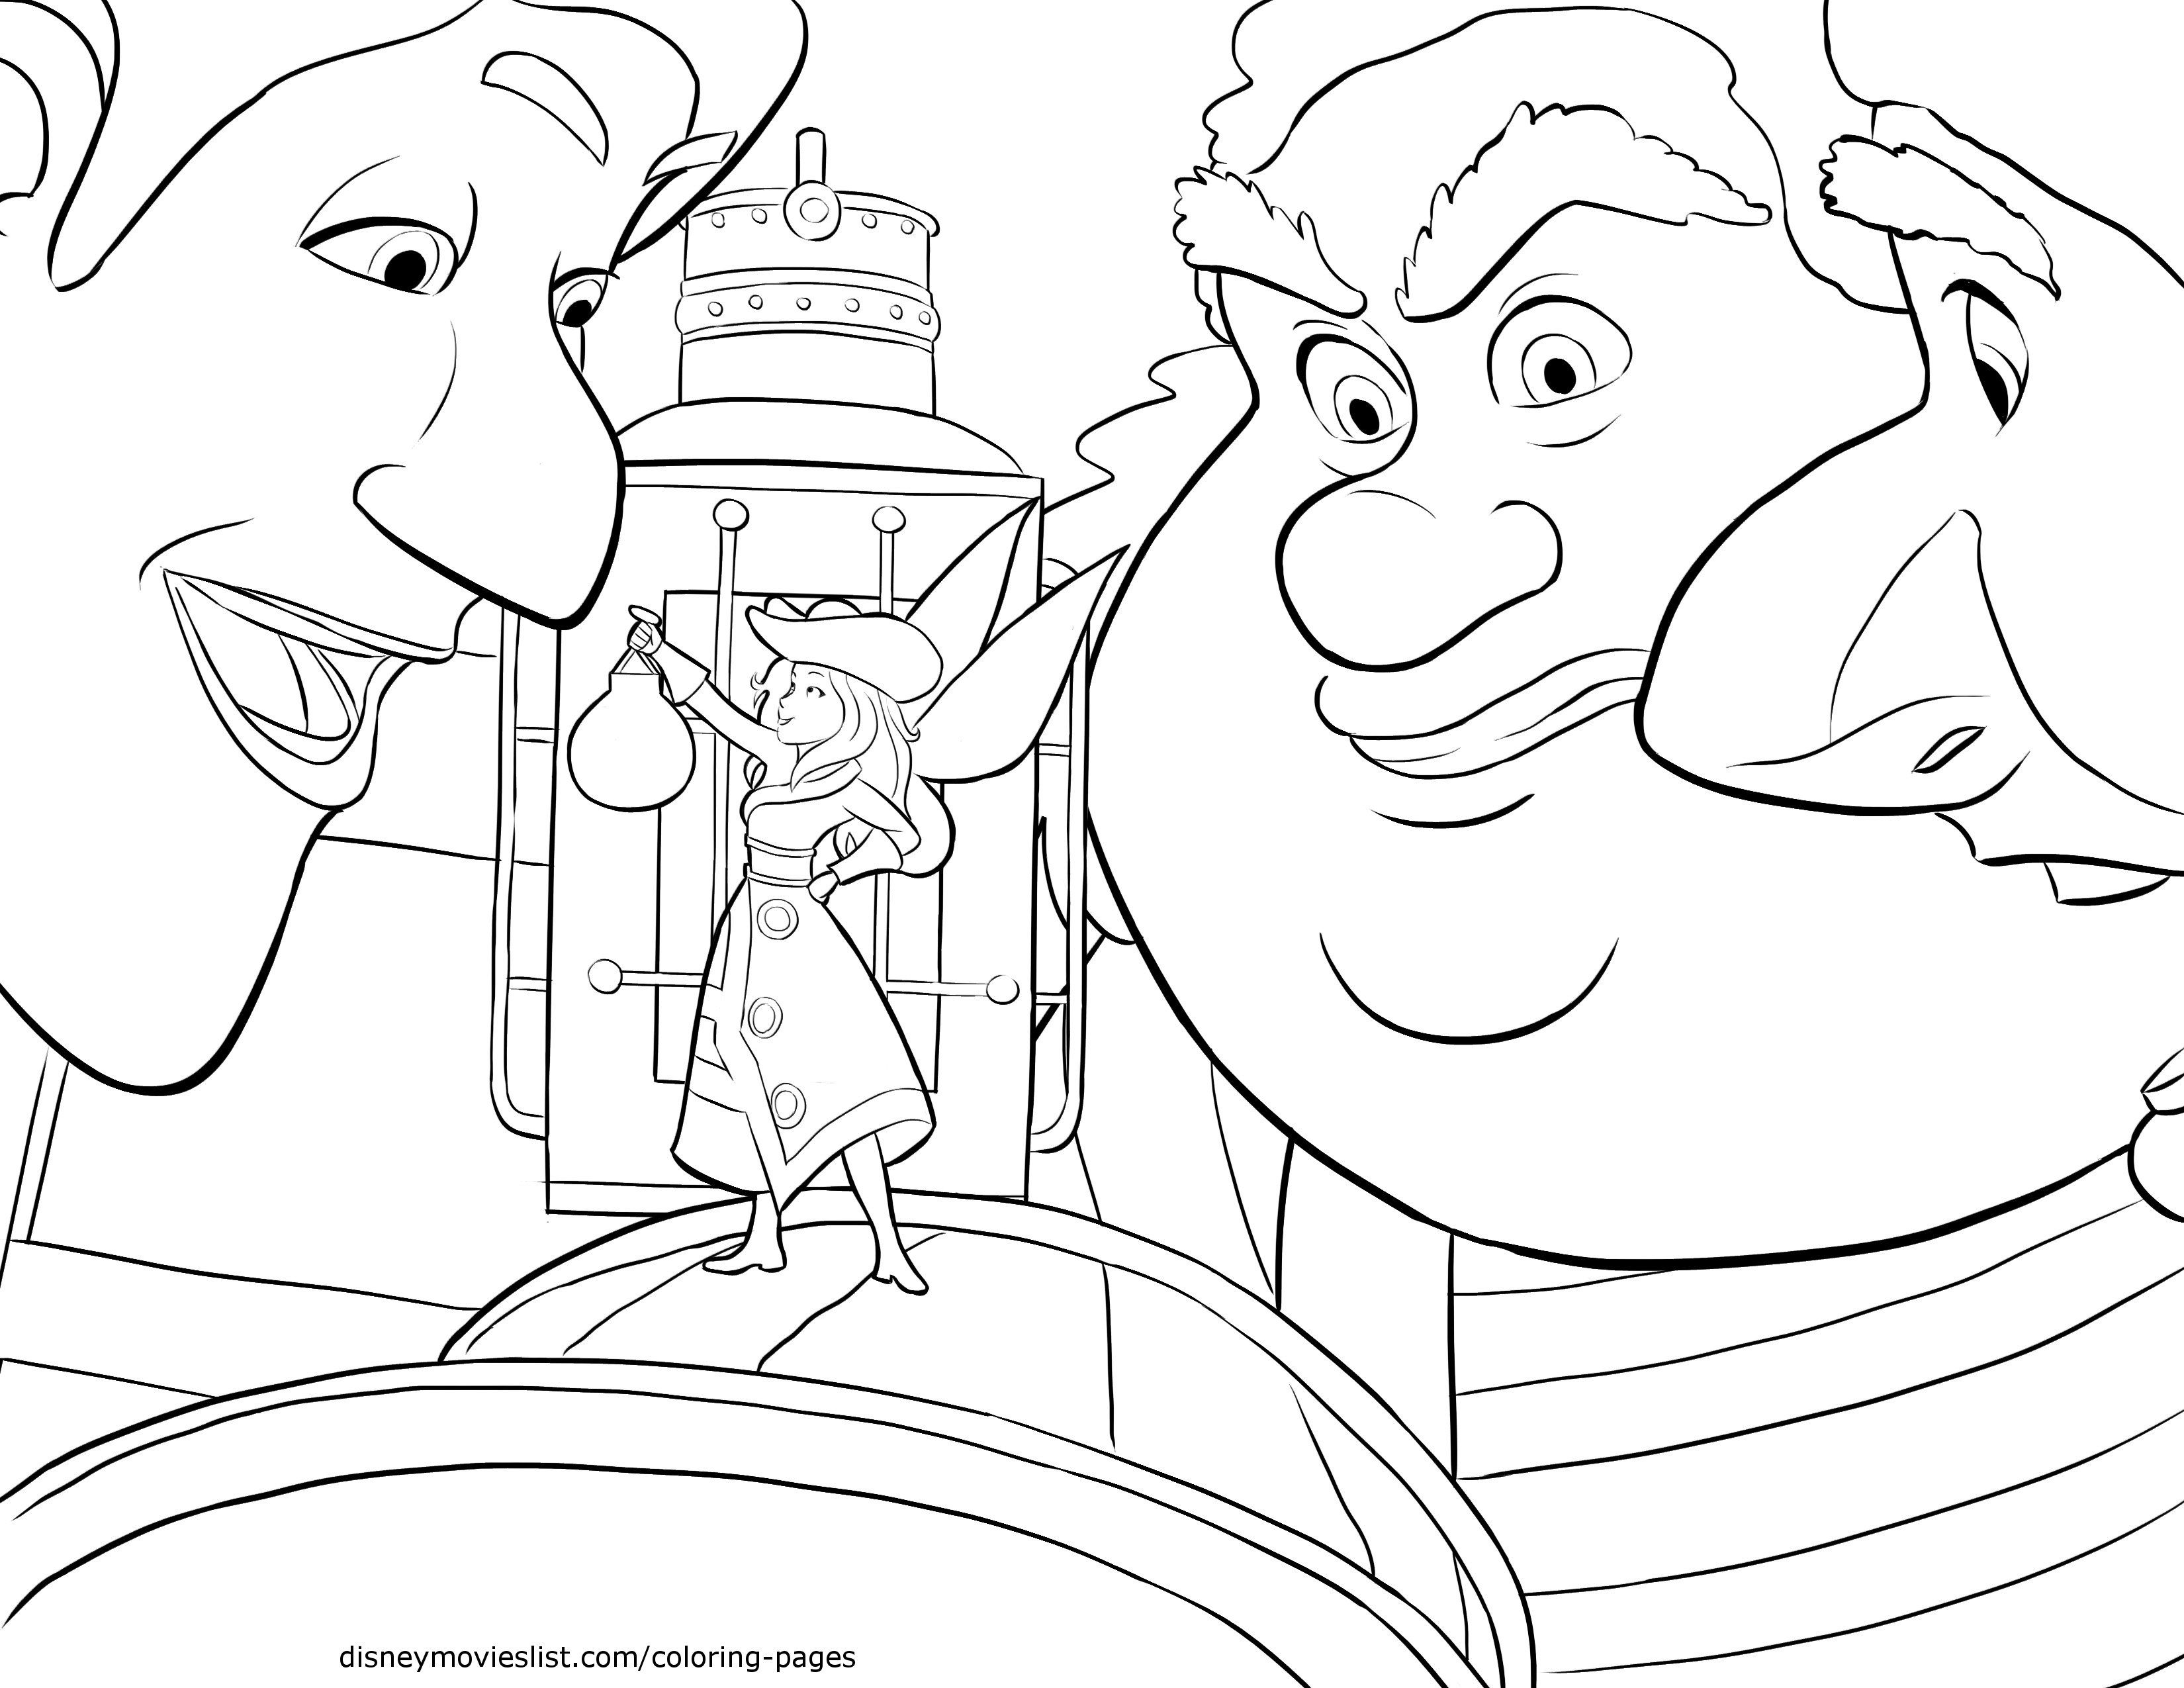 Black & white Zarina | Tinkerbell coloring pages, Fairy ...